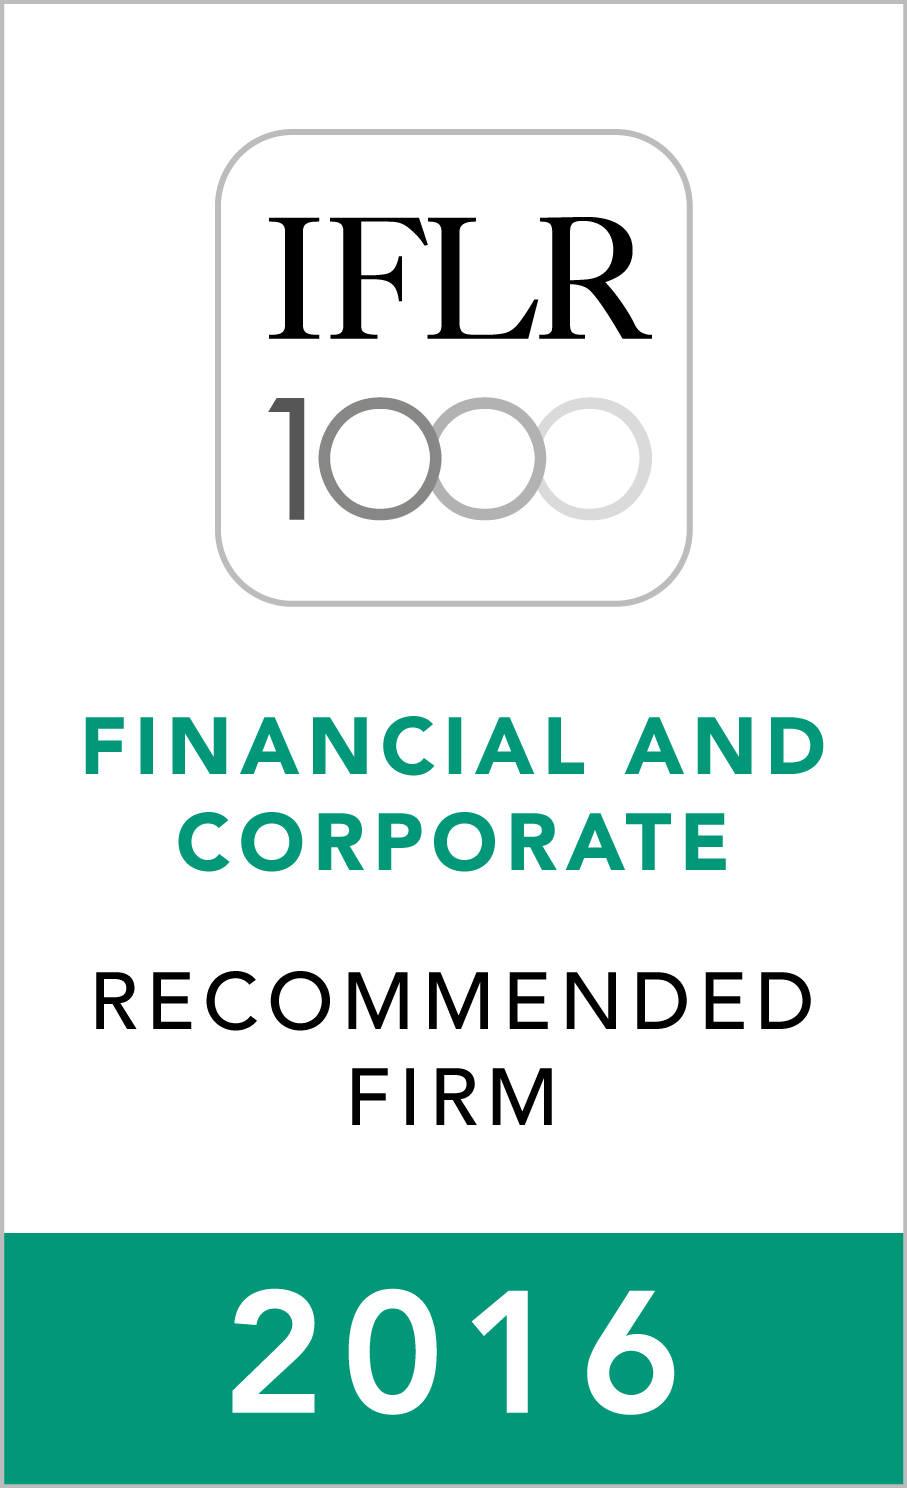 IFLR_FinancialCorporate_2016.png